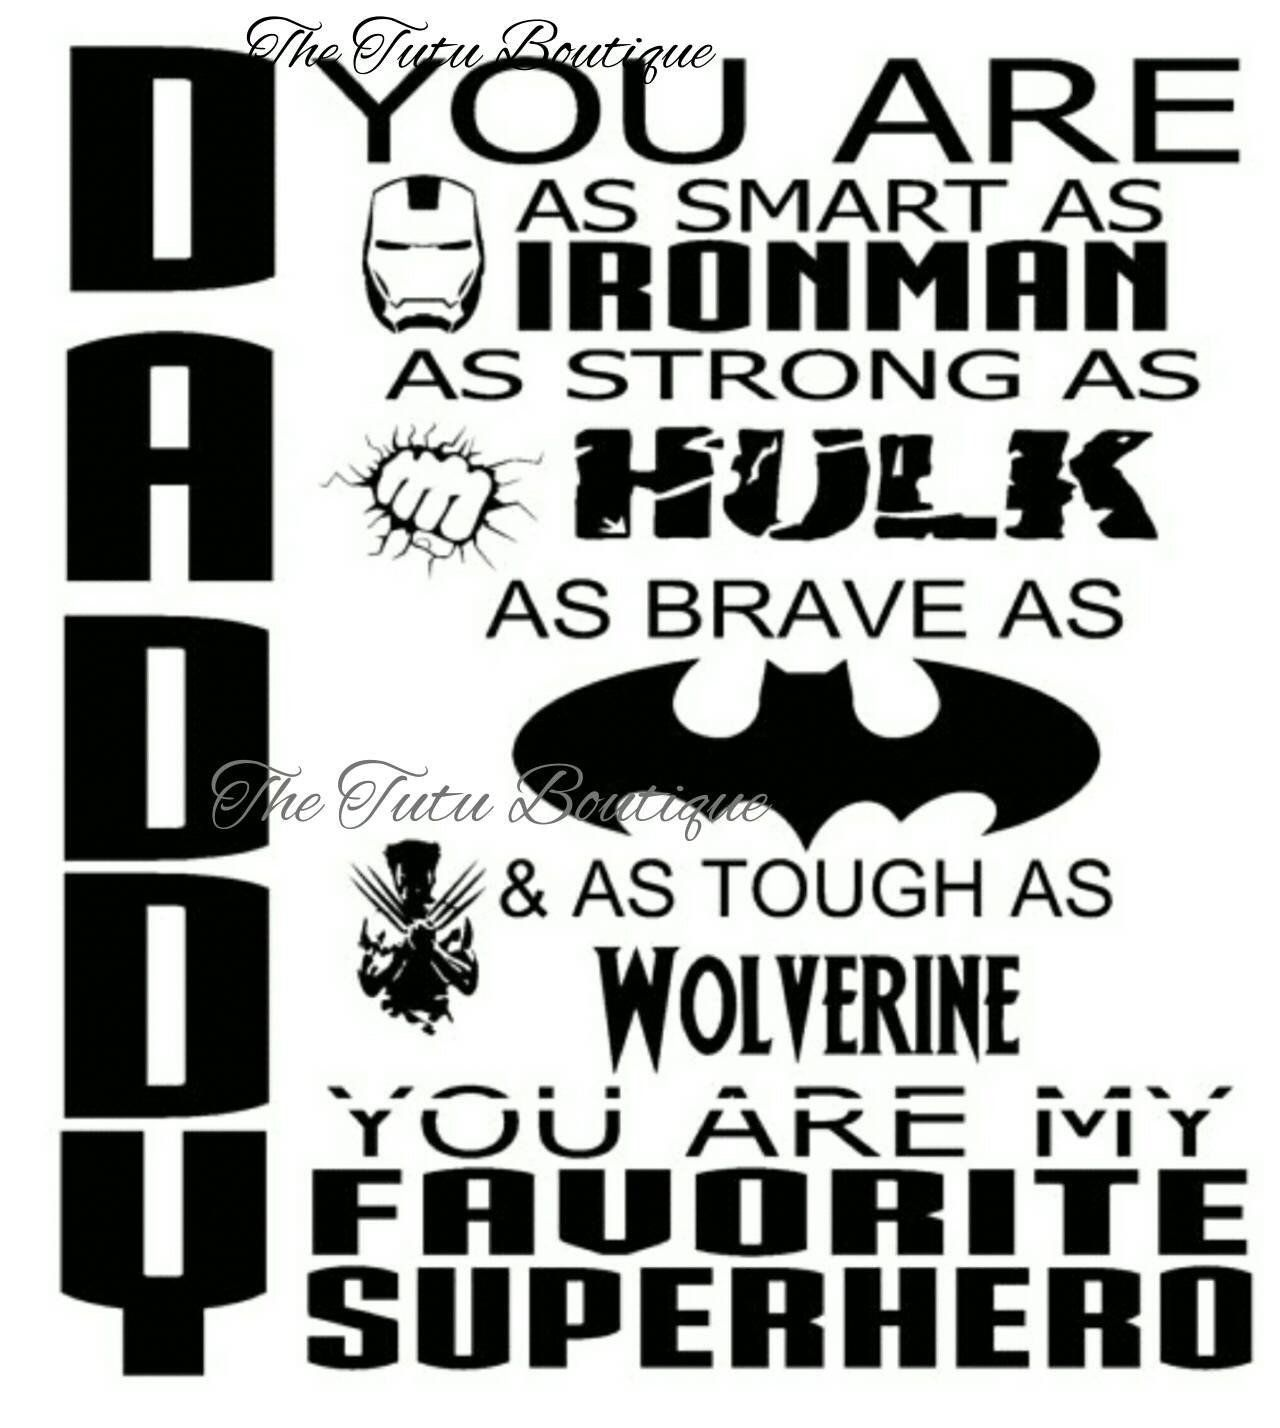 Free Daddy superhero svg, superhero daddy svg, fathers day svg. Daddy You Are Our Favorite Superhero Svg Father S Day Instant Download Digital Download Fathers Day Diy Father S Day Gifts Fathers Day Crafts SVG, PNG, EPS, DXF File